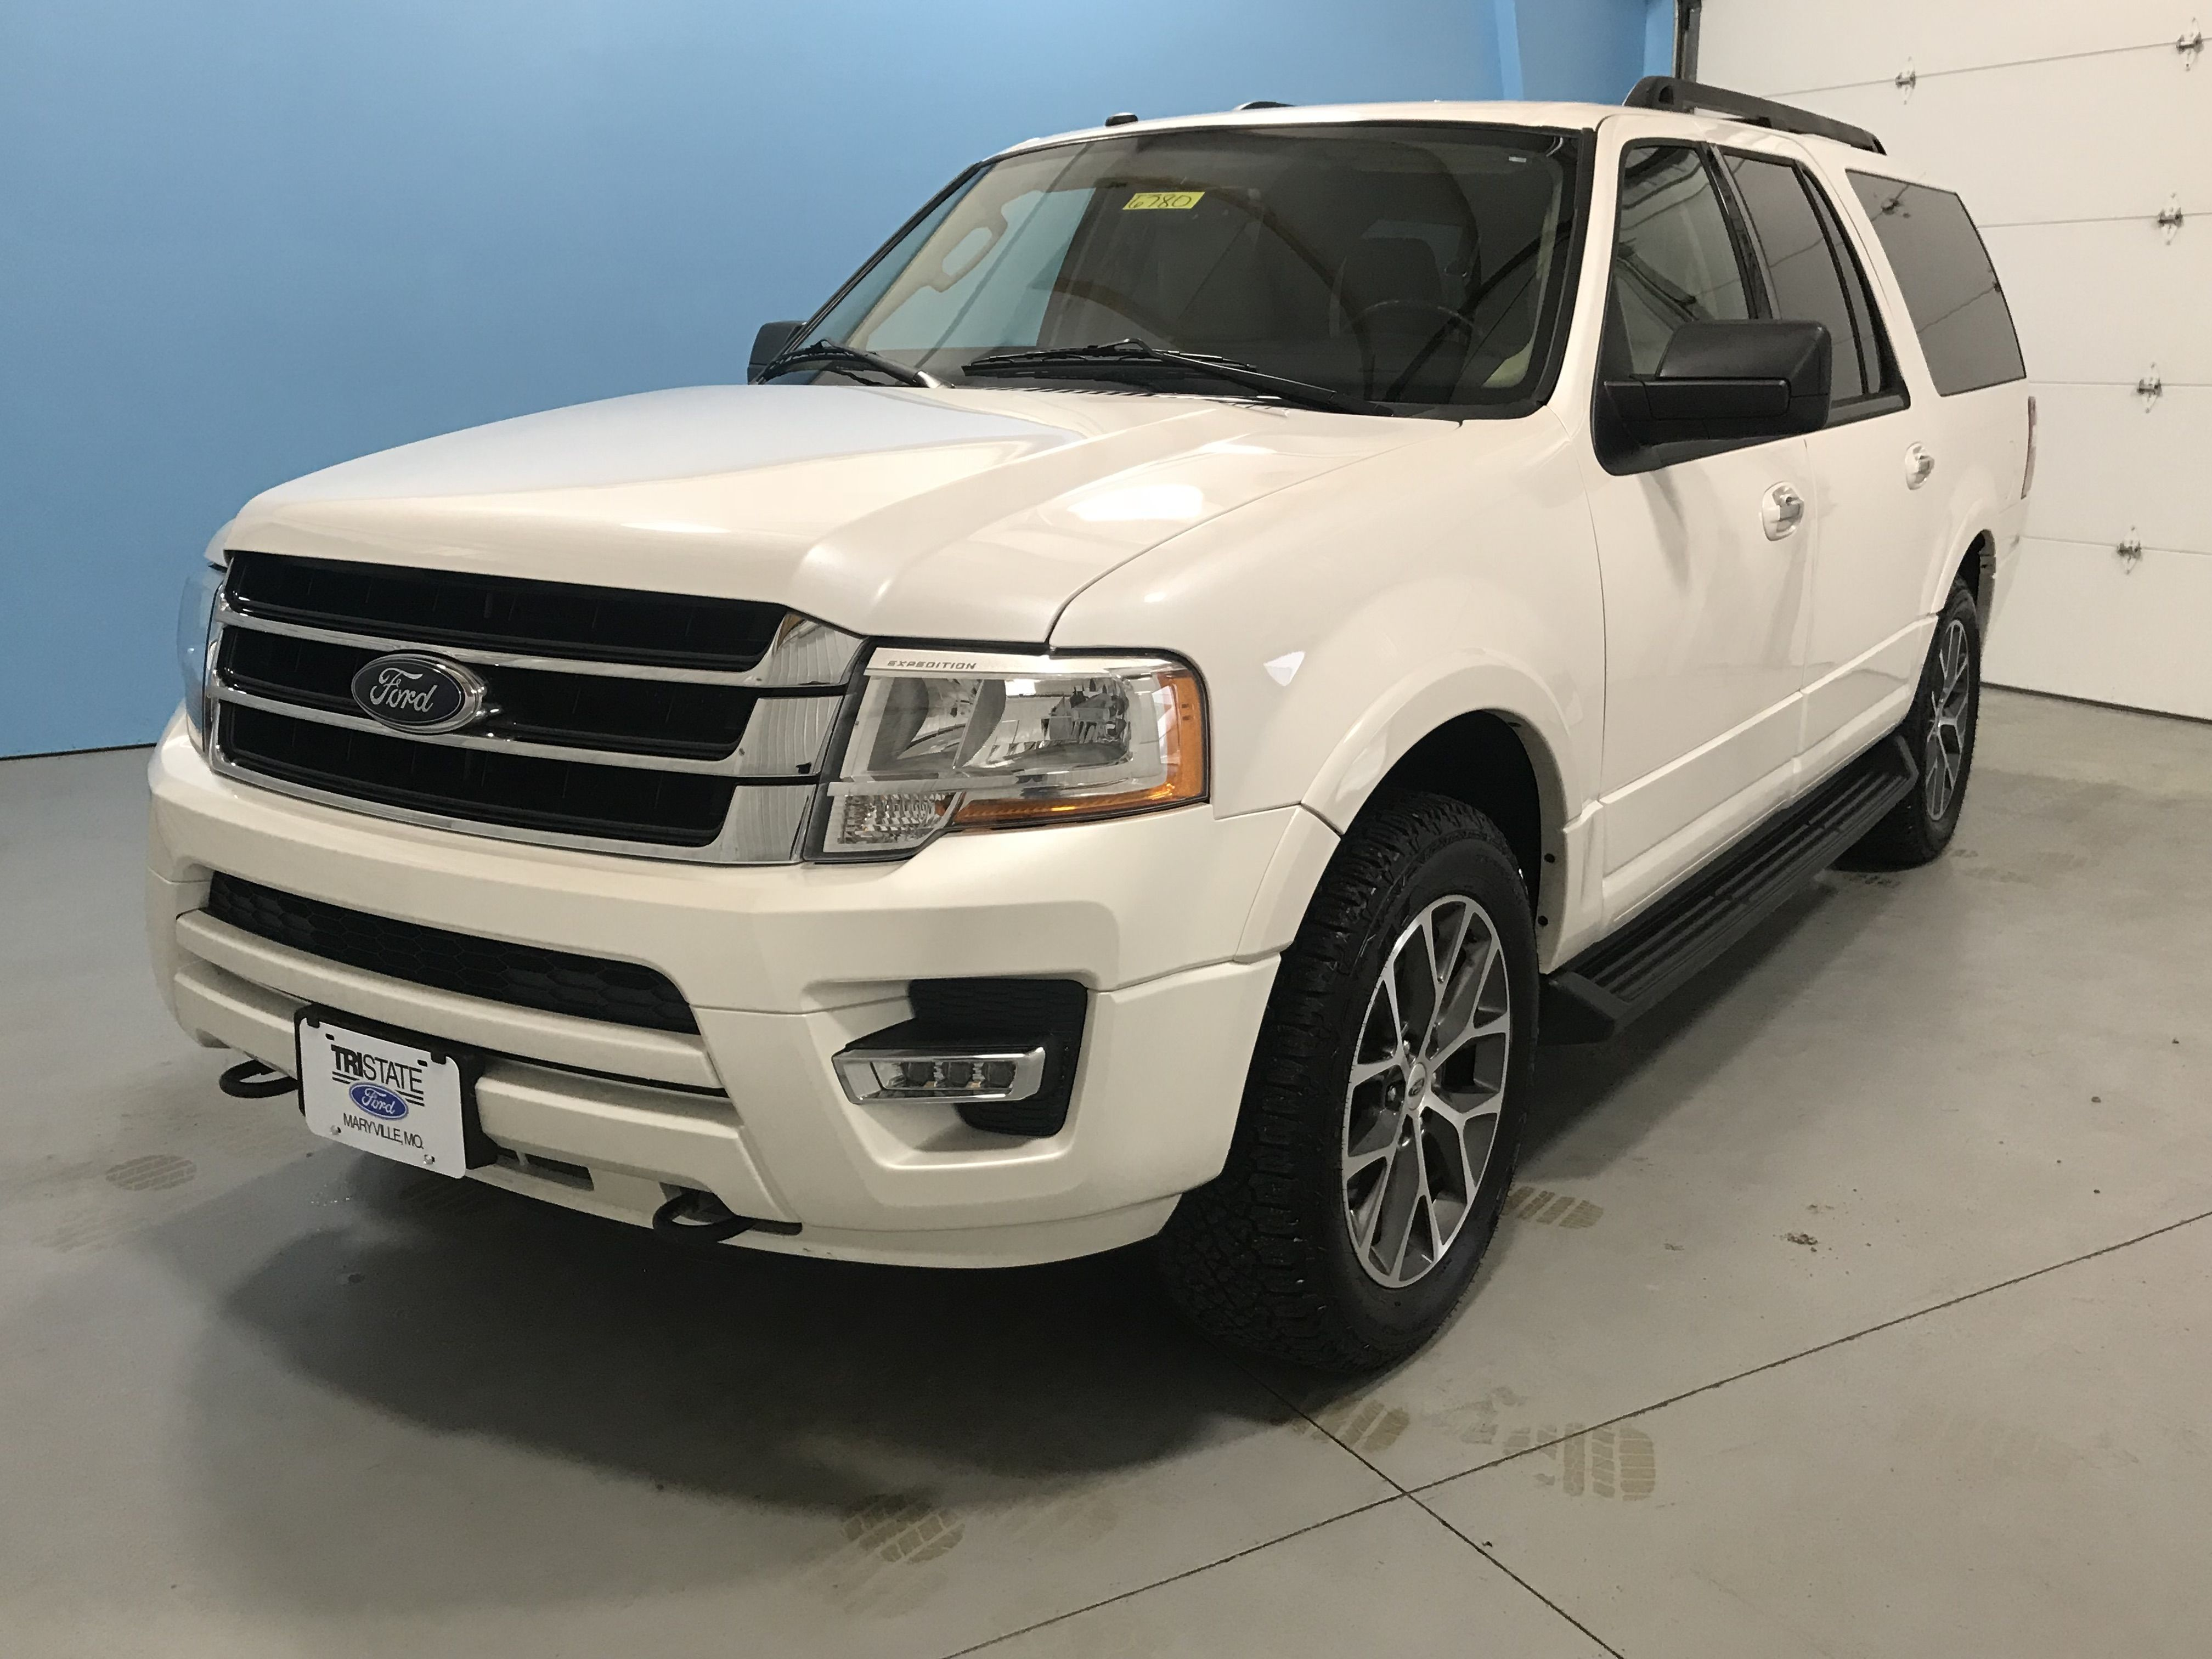 This 2017 Ford Expedition El Xlt Leather Interior Rearview Camera